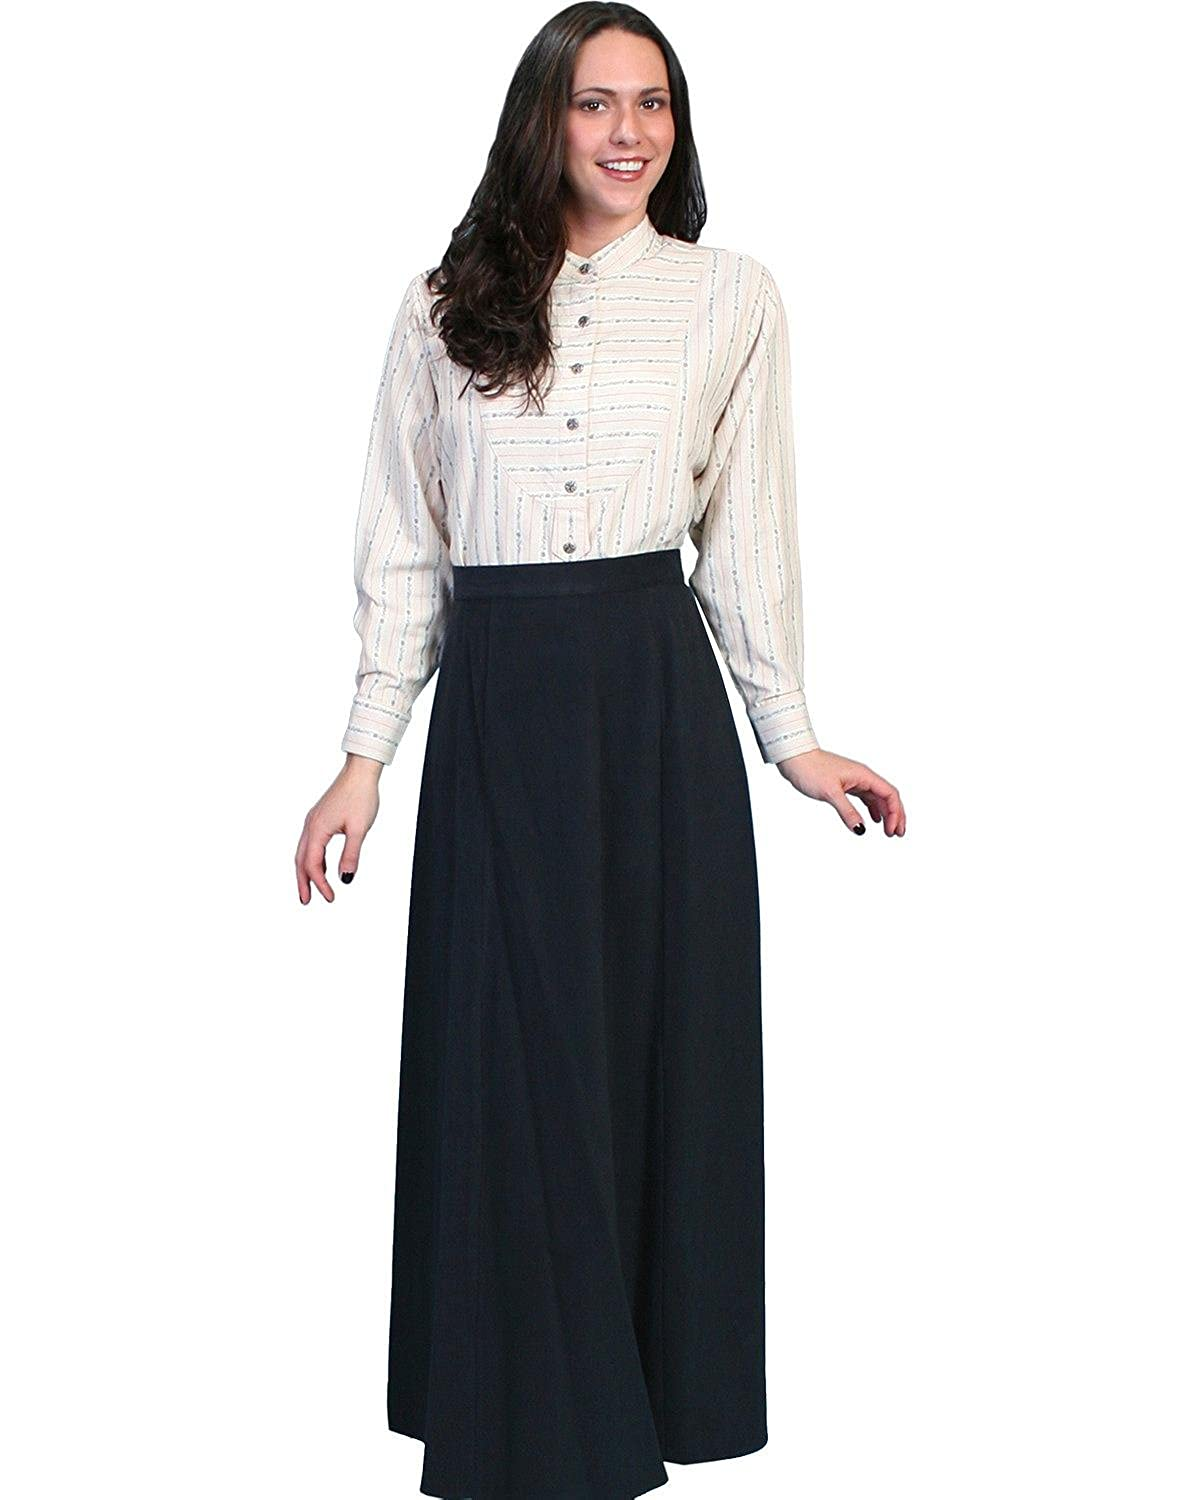 Victorian Costumes: Dresses, Saloon Girls, Southern Belle, Witch Scully Rangewear Womens Rangewear Brushed Twill Skirt - Rw530tan $76.75 AT vintagedancer.com